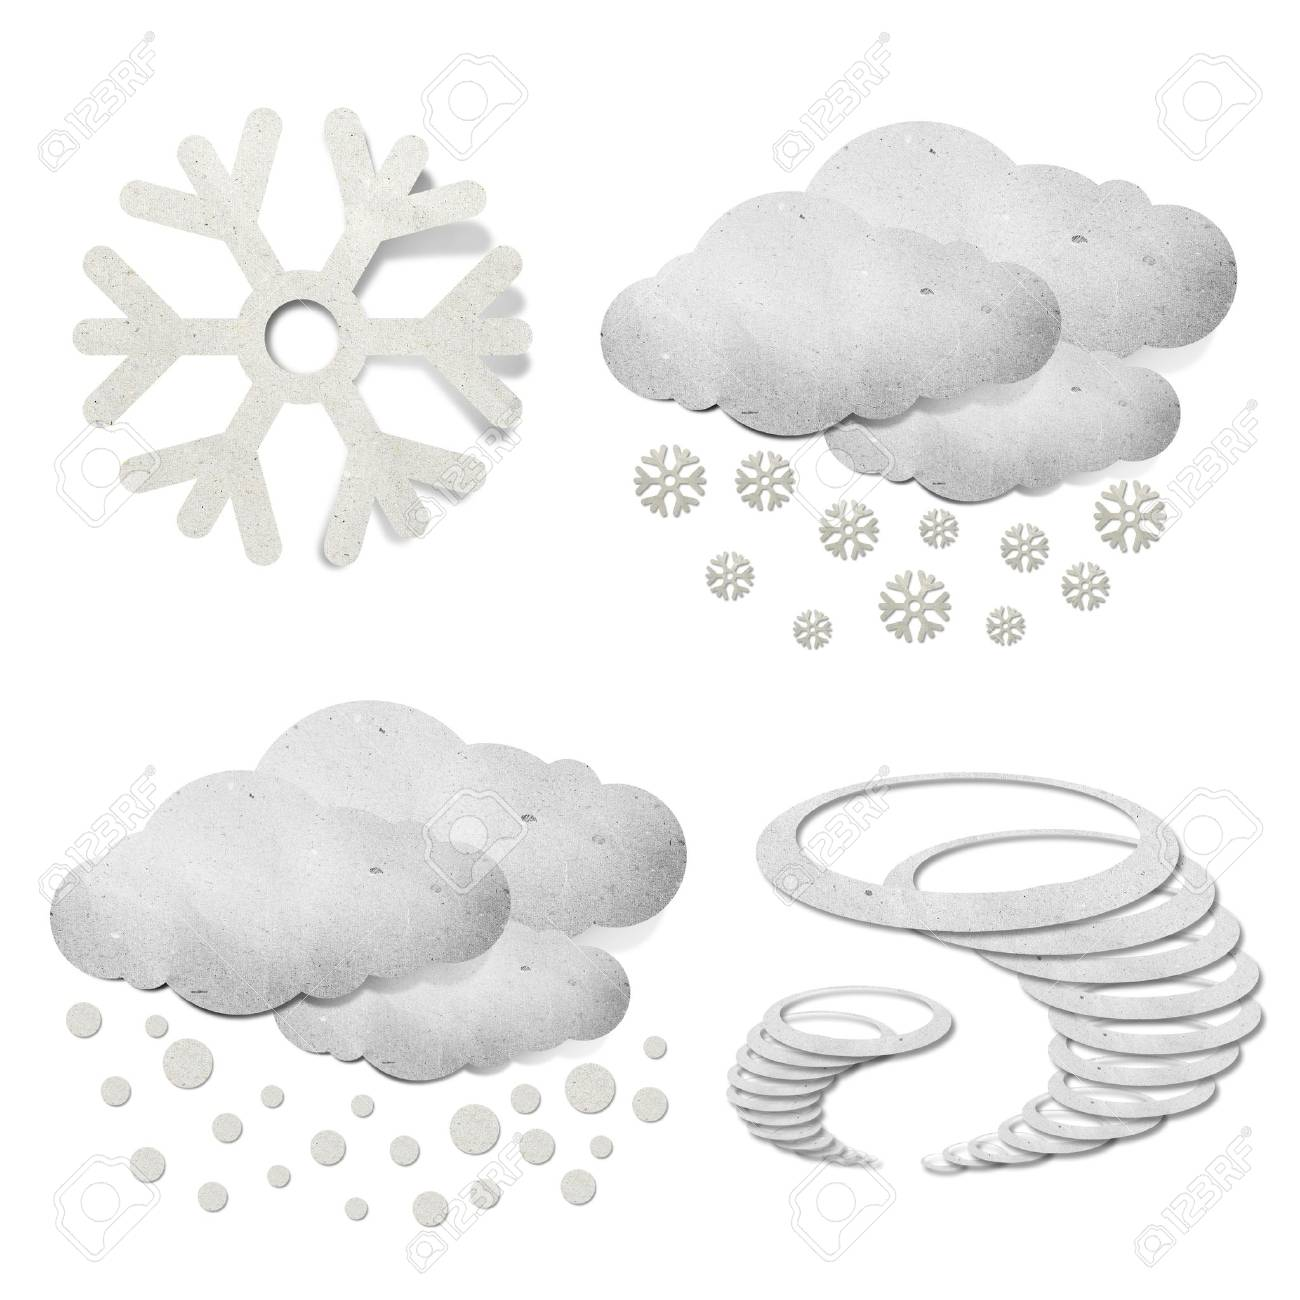 Weather grunge recycled paper craft stick on white background Stock Photo - 9648350